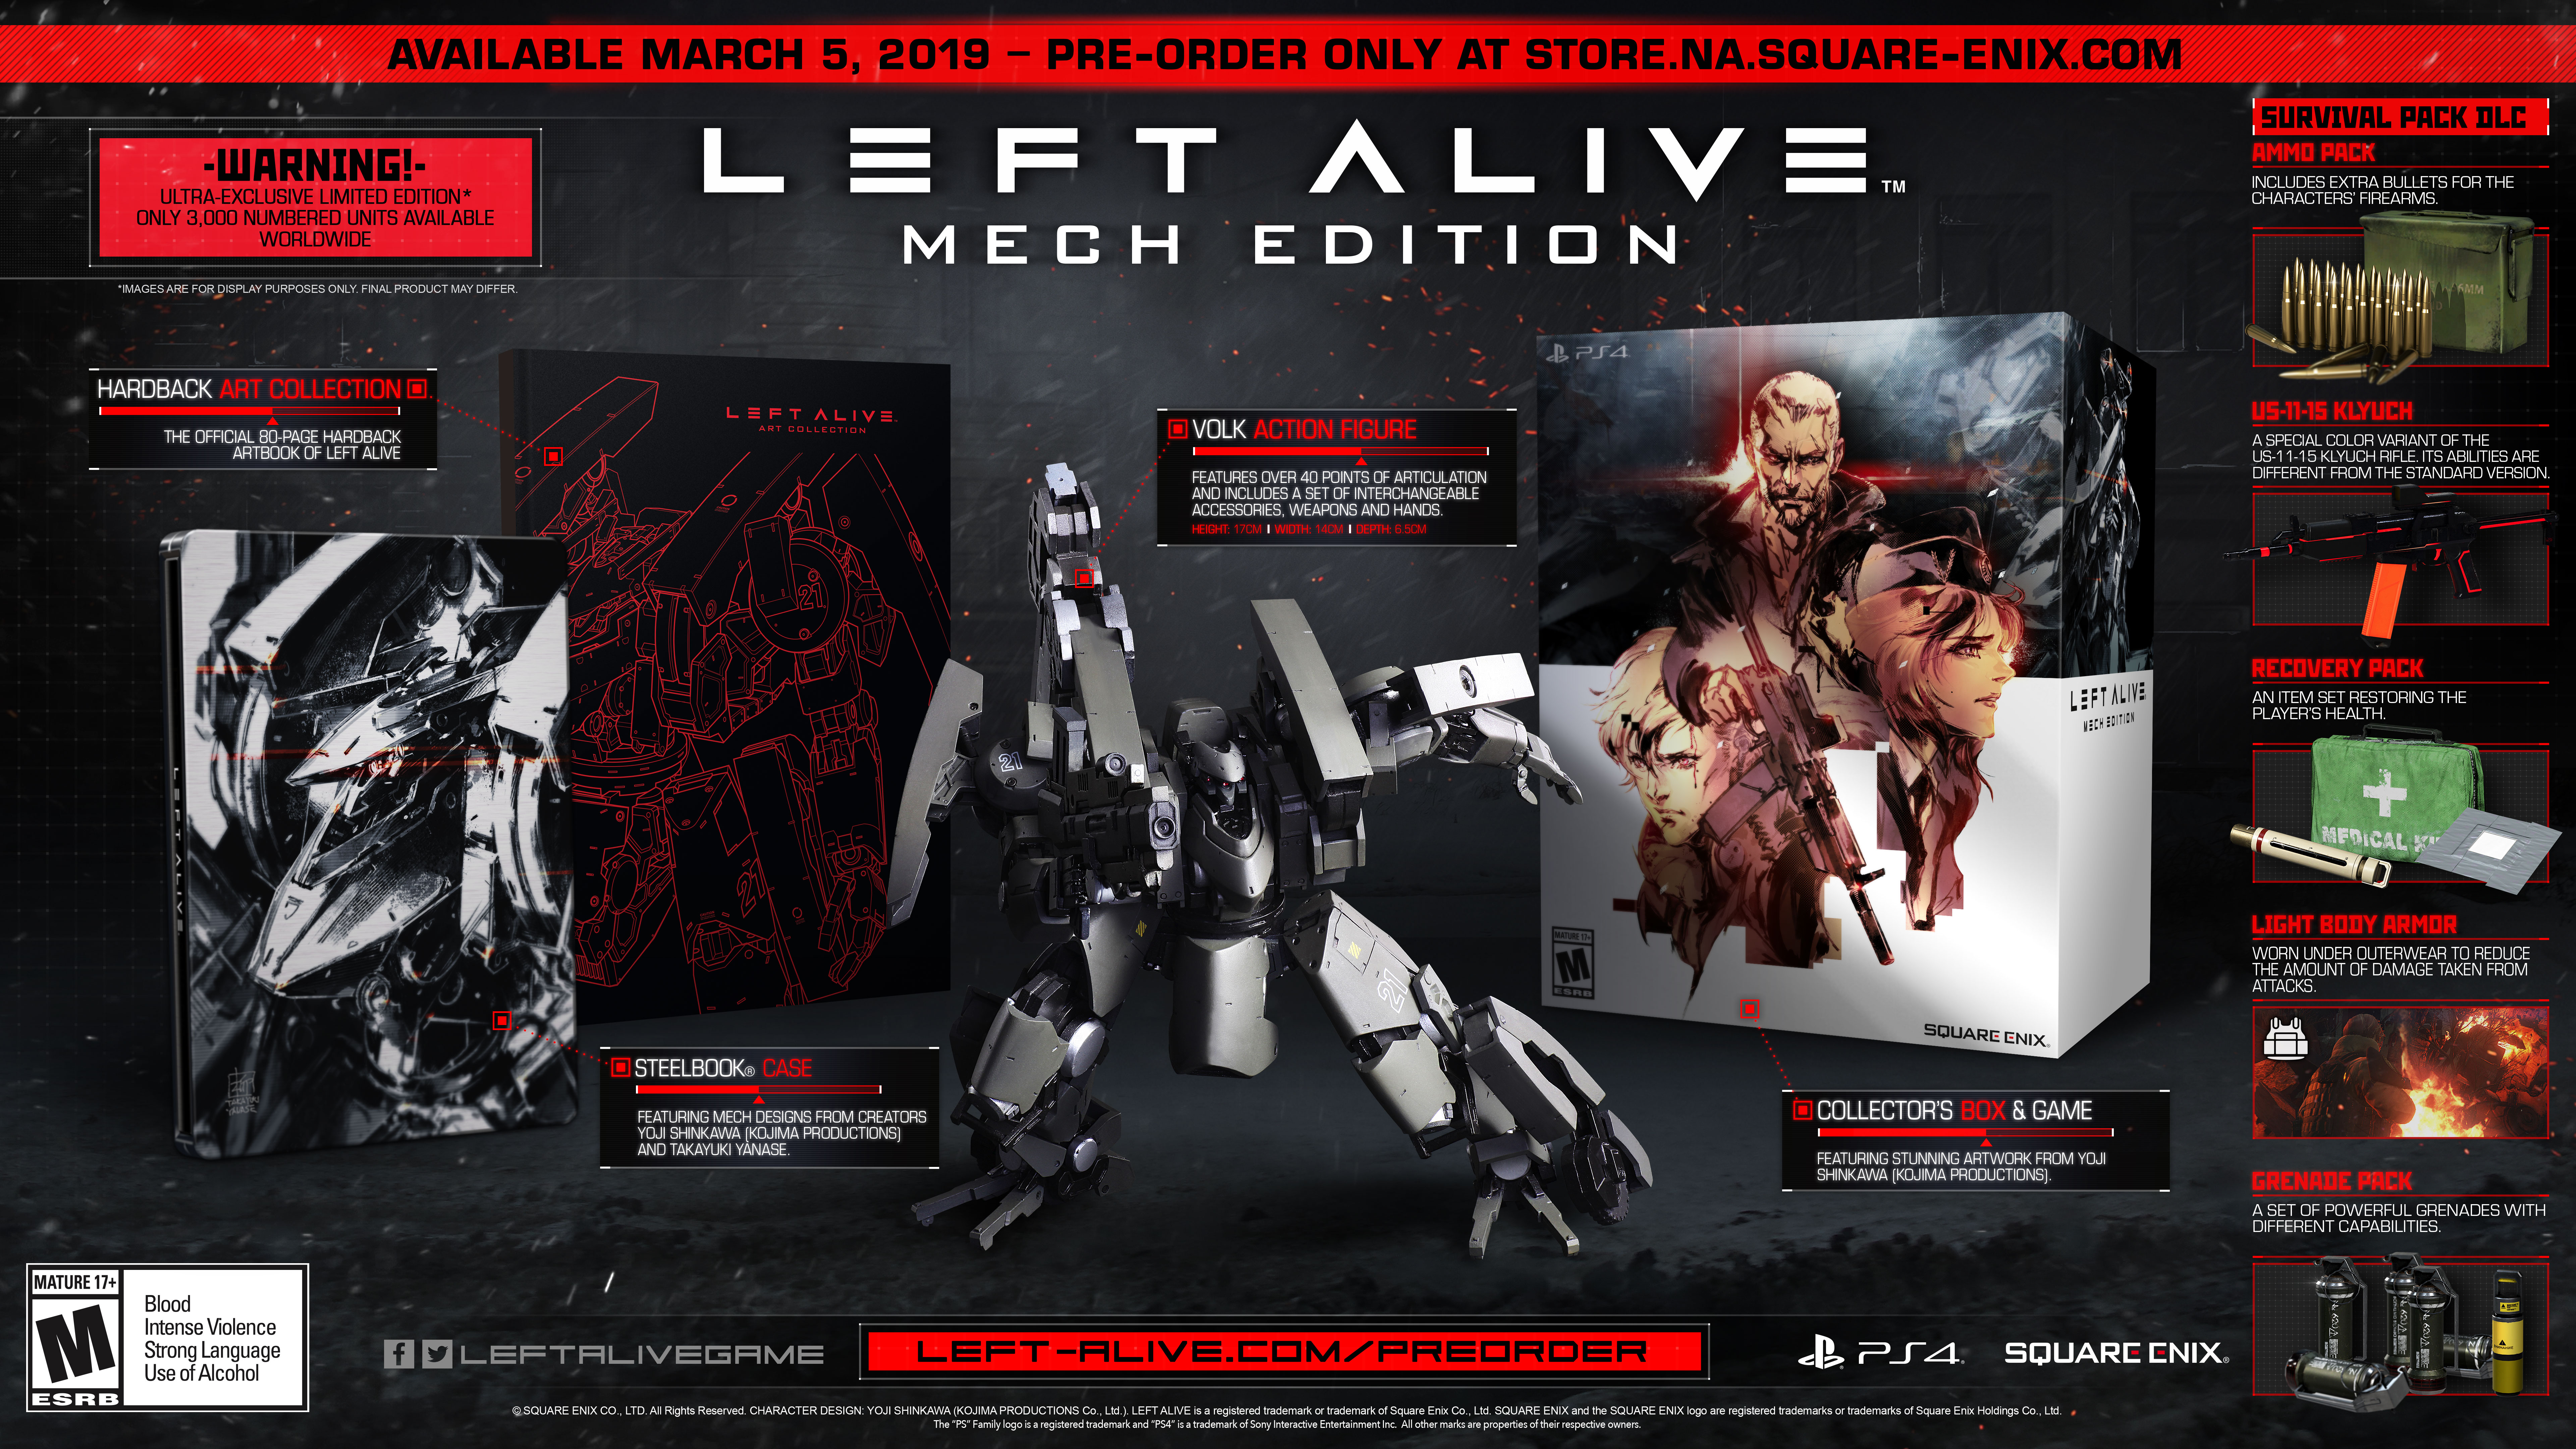 Left Alive Mech Edition